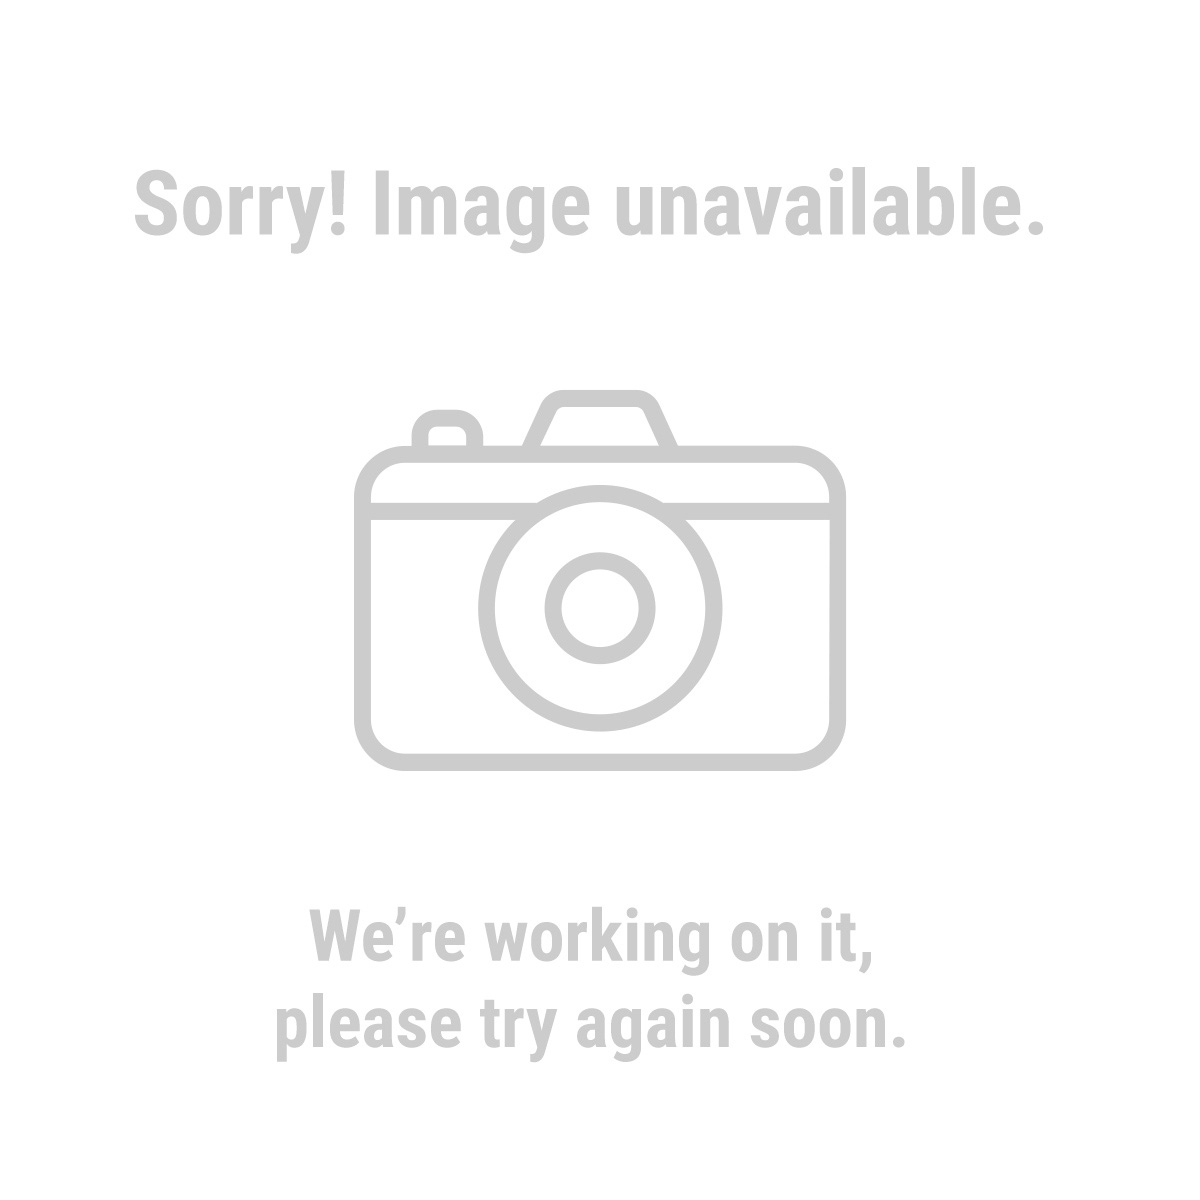 Greenwood 65040 4 gal. Backpack Sprayer